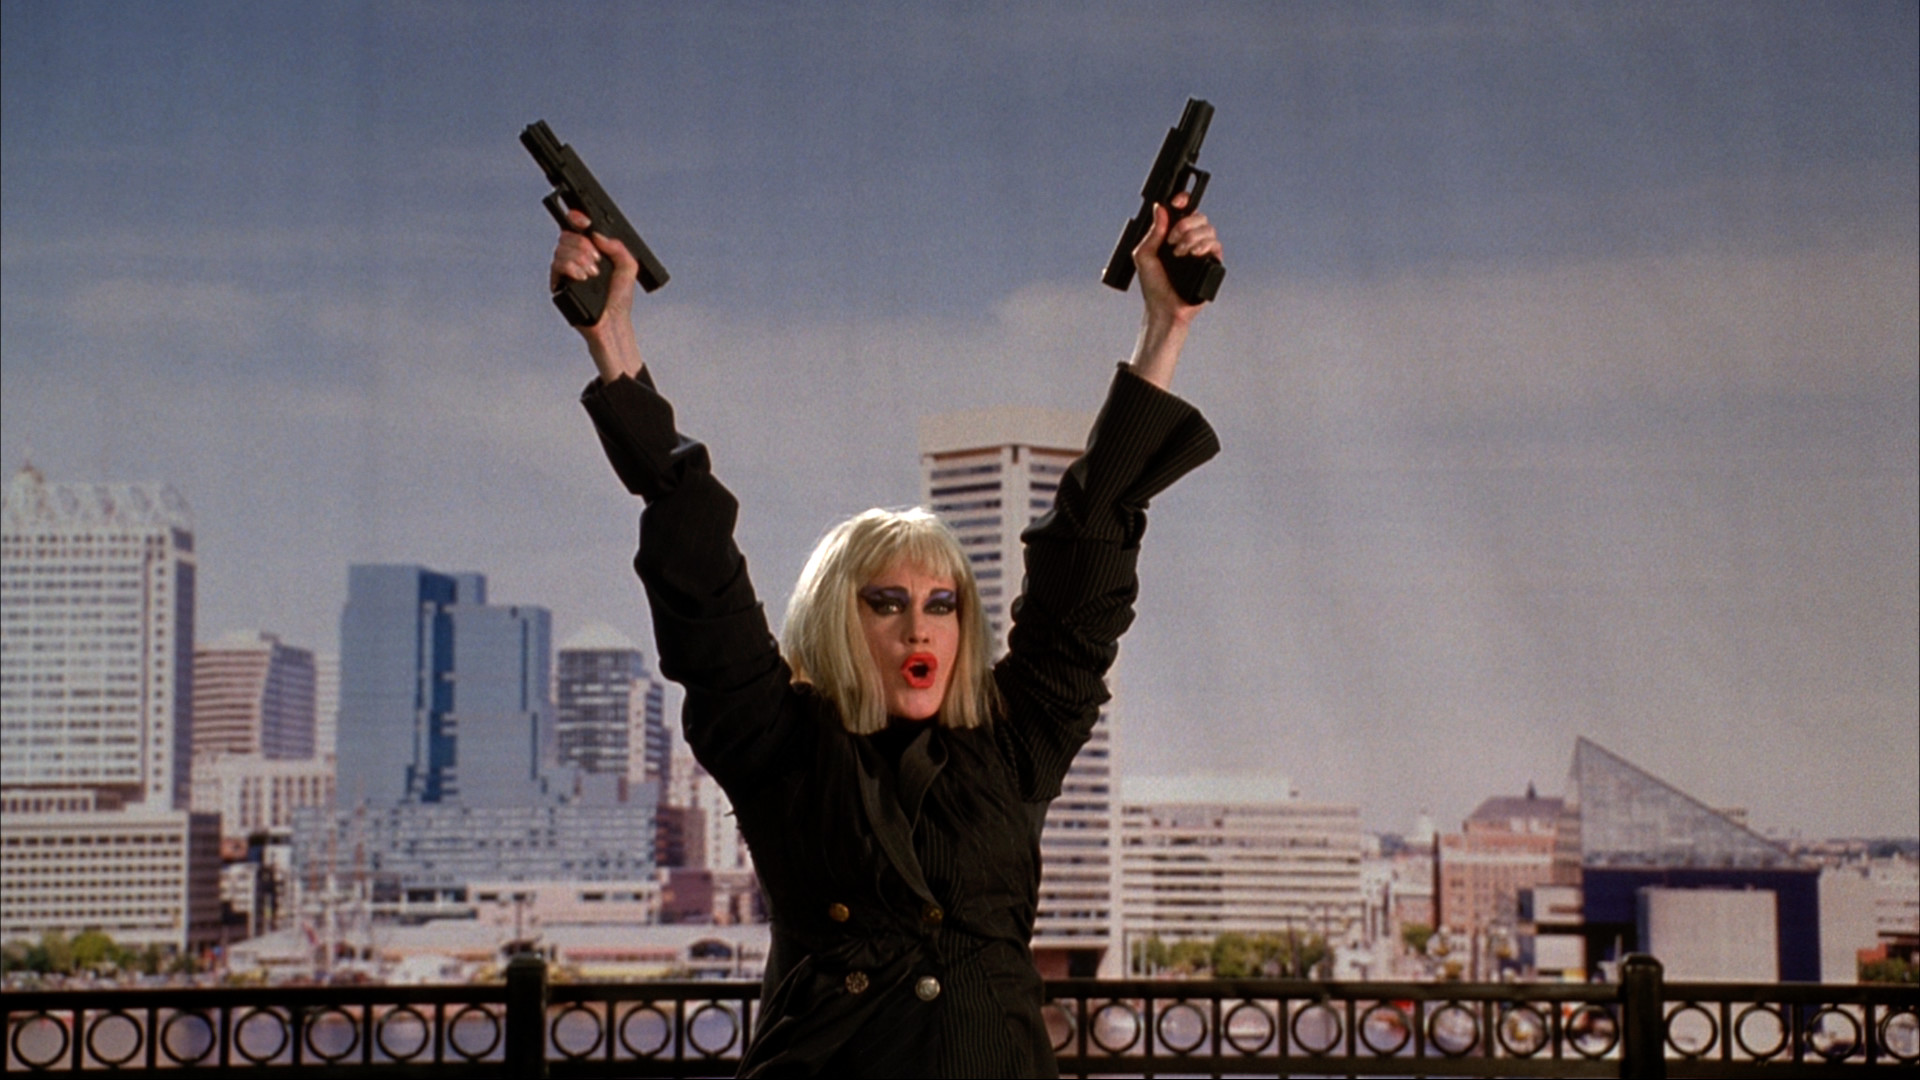 NOW BOOKING: CECIL B DEMENTED, part of JOHN WATERS SELECTROSPECTIVE at The Prince Charles.